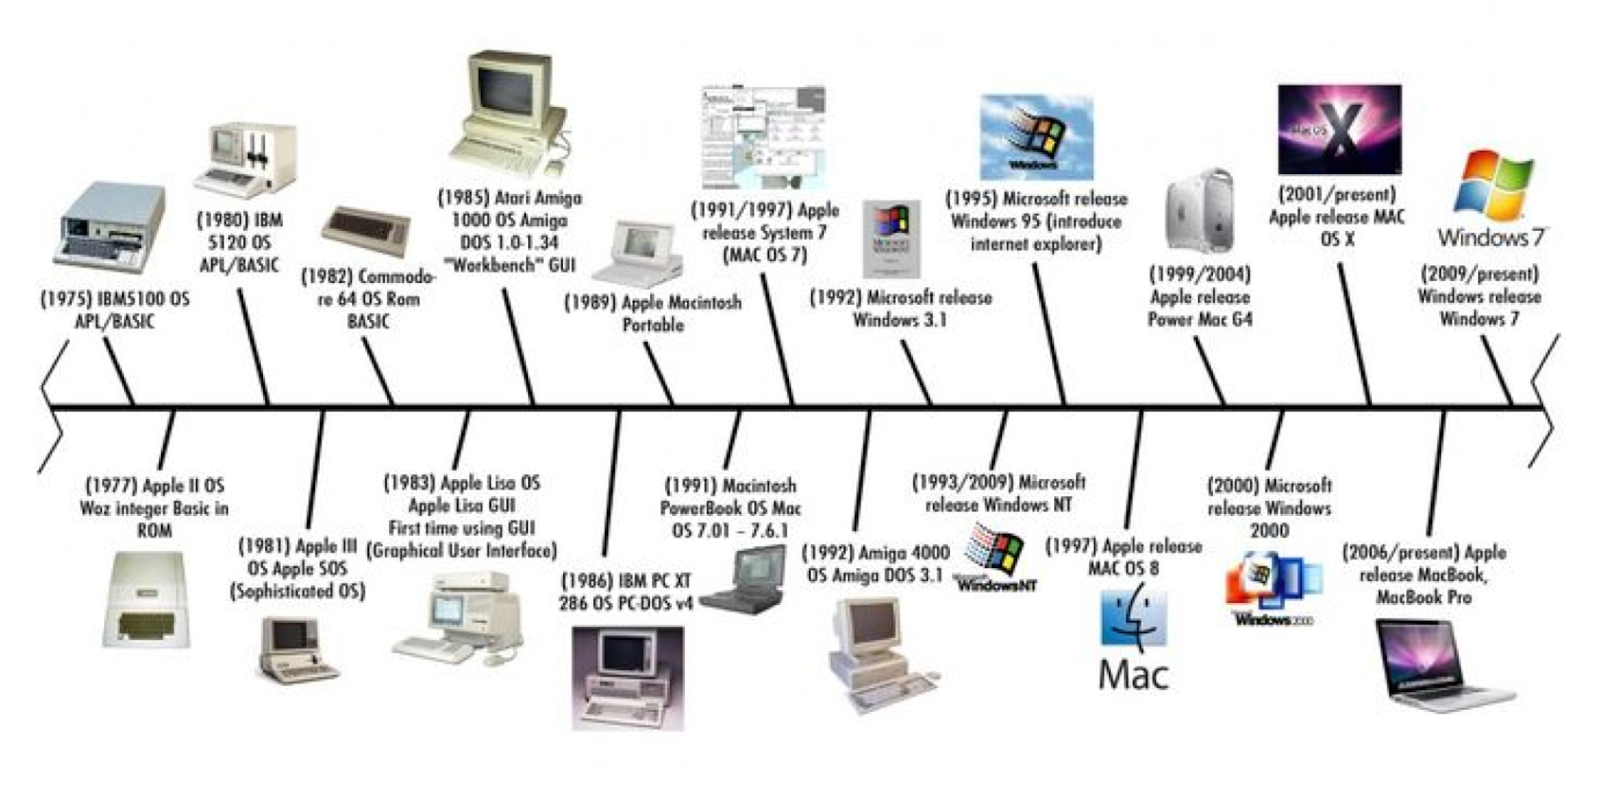 ... technological progress as a linear path towards an objectively  desirable goal. For example, consider the above timeline of notable hardware  and software ...